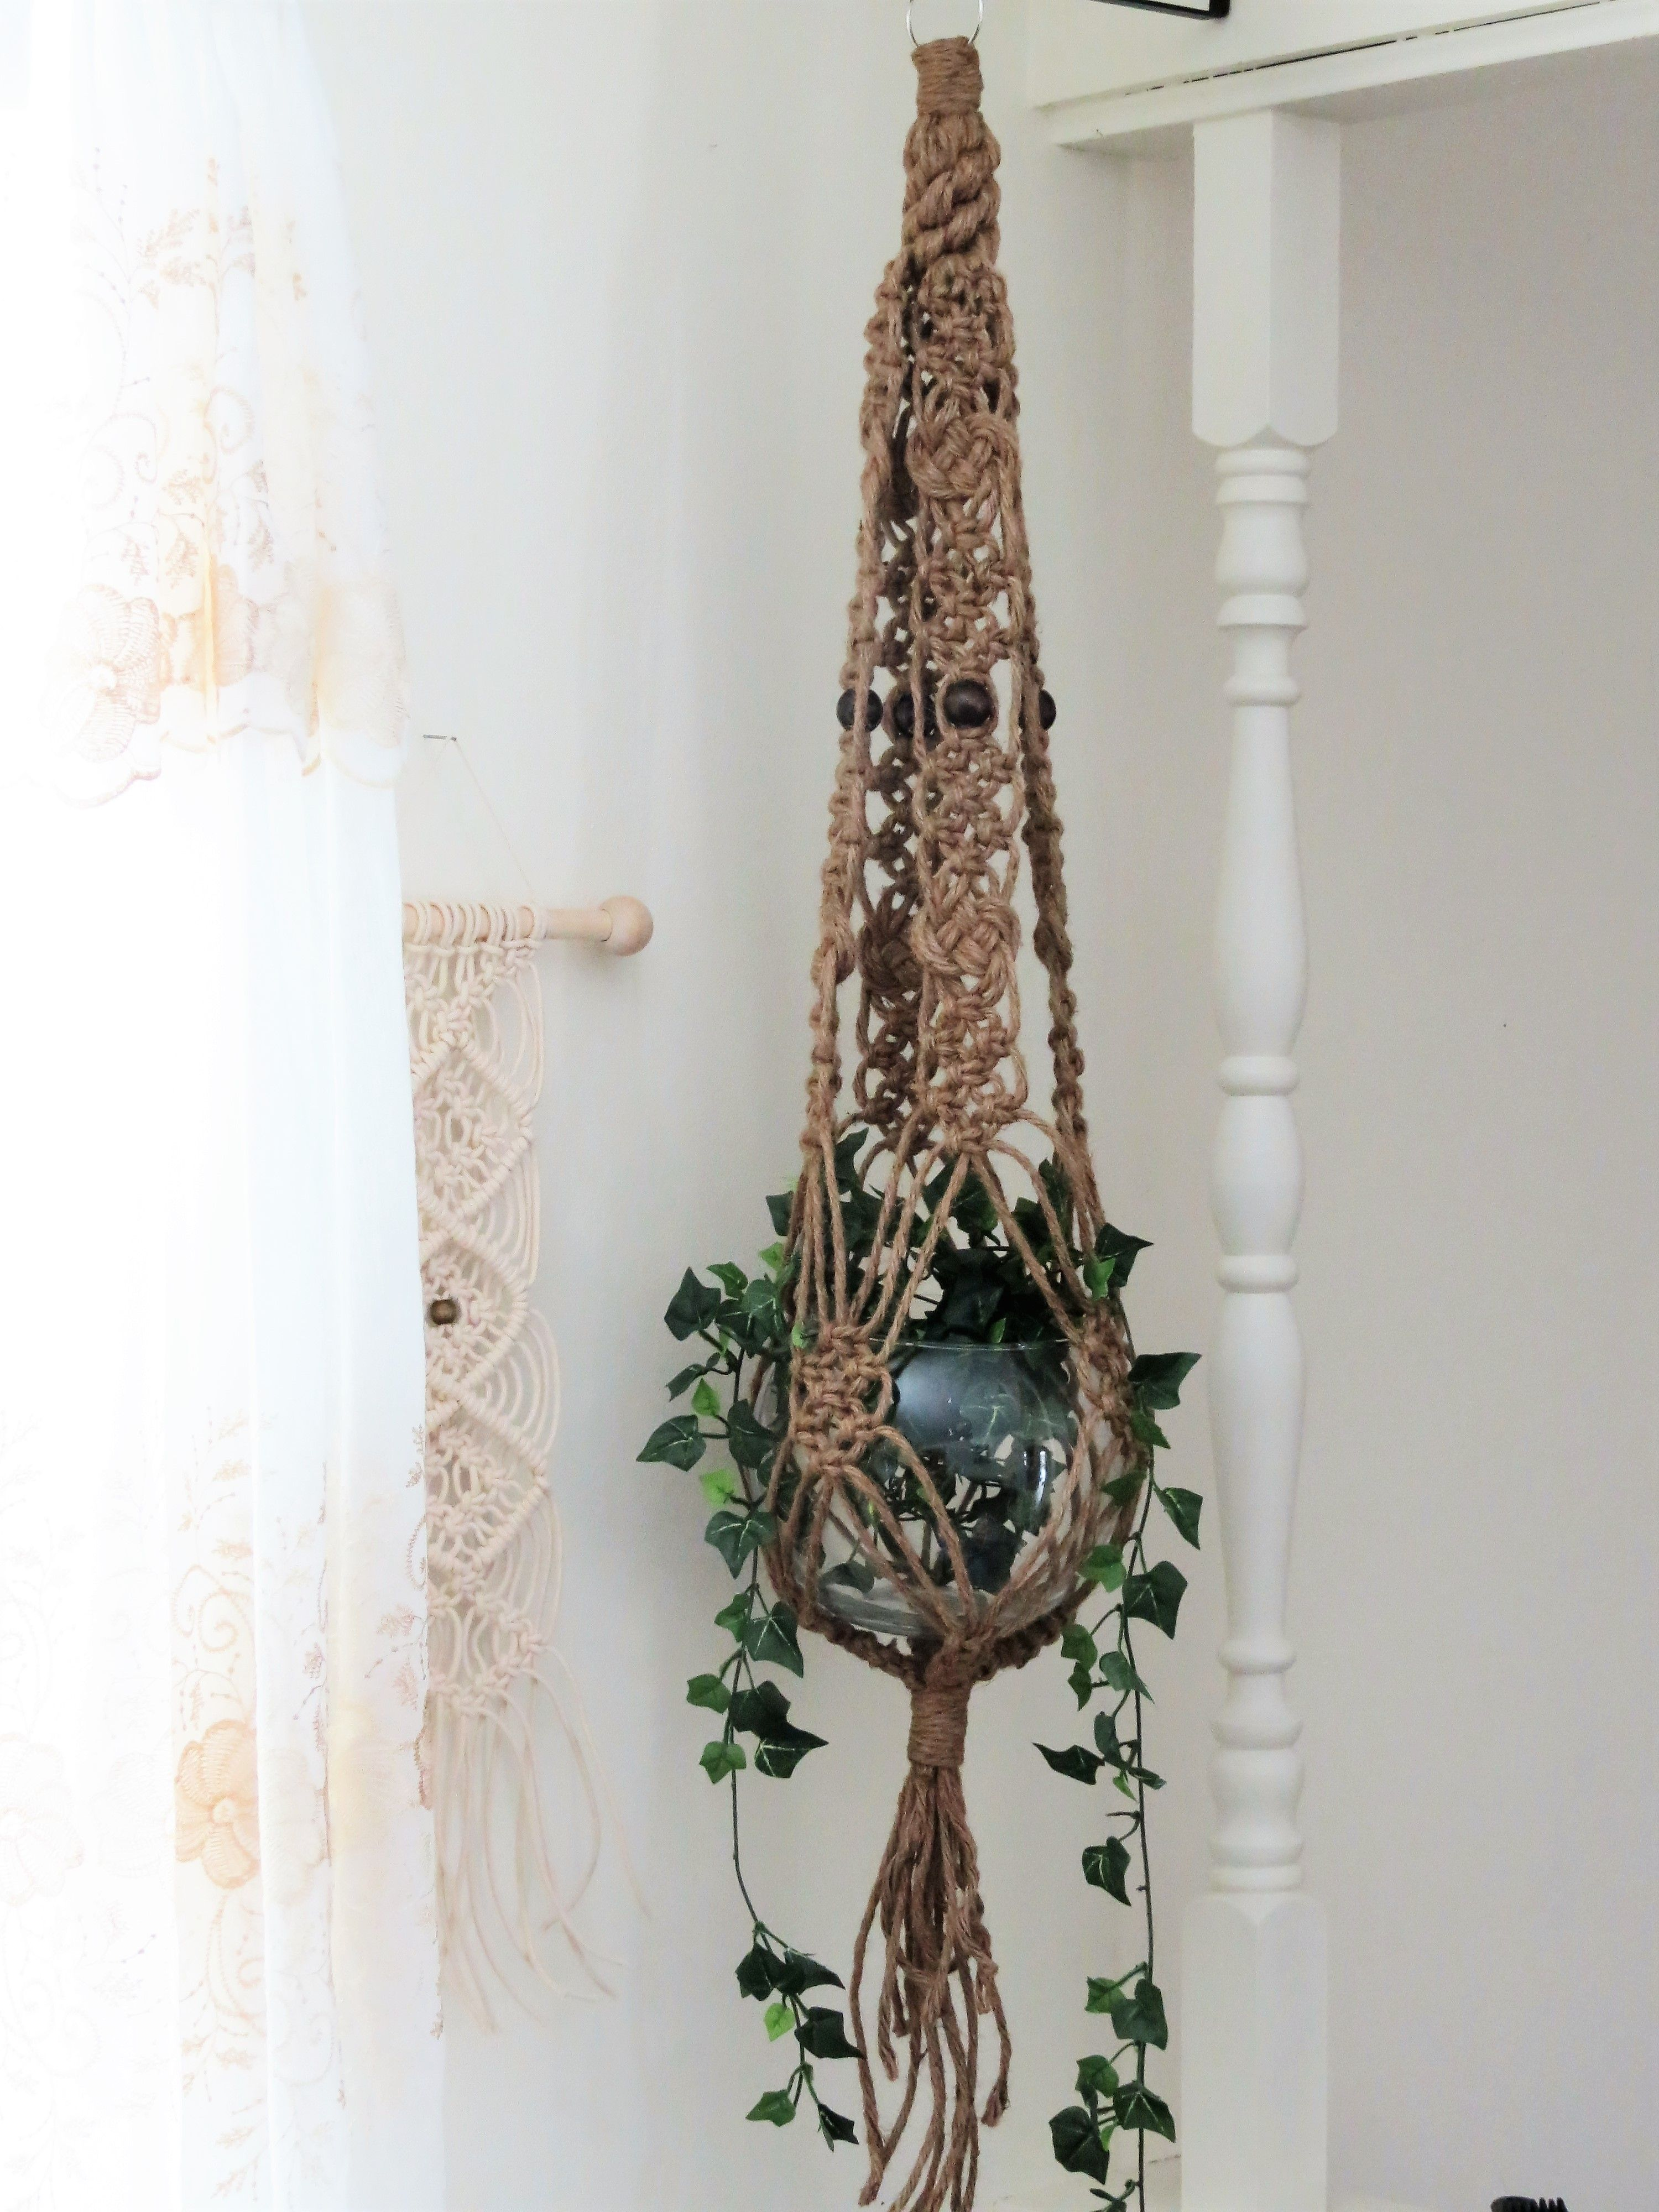 Uncategorized Macrame Patterns Plant Hanger jute macrame plant hanger hanging planter large holder thick pot vintage 70s modern hangi